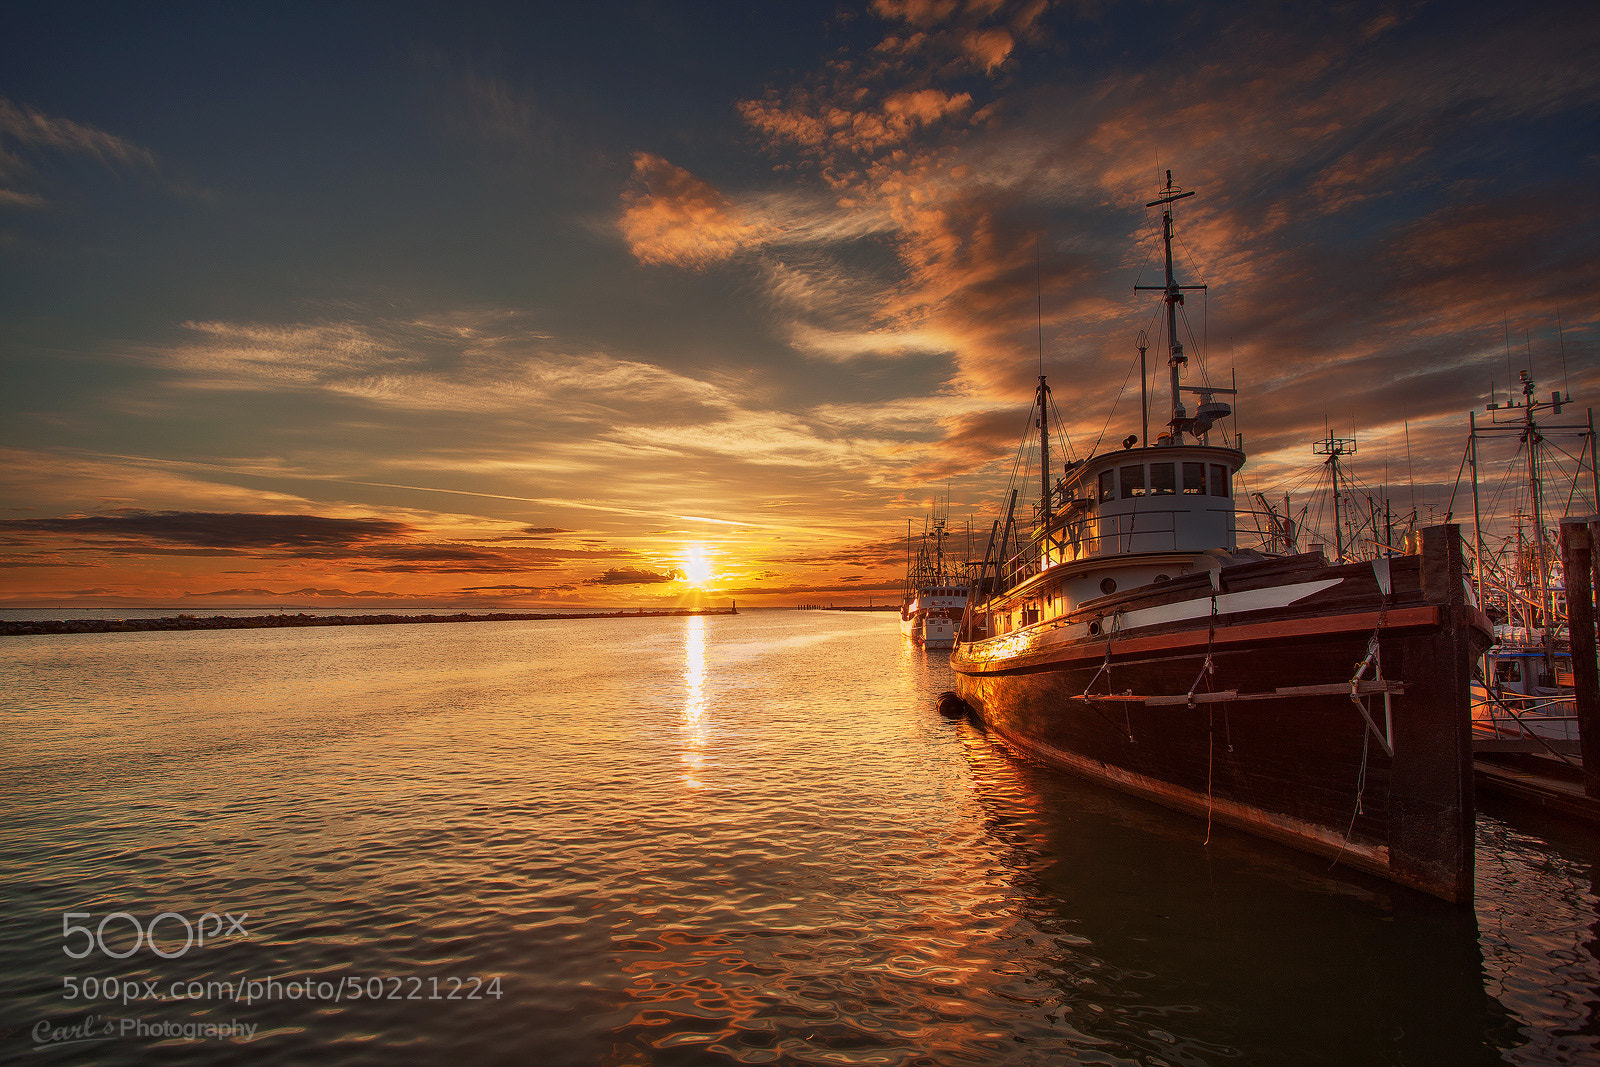 Photograph Sunset at Fisherman's Wharf by Carl Pan on 500px